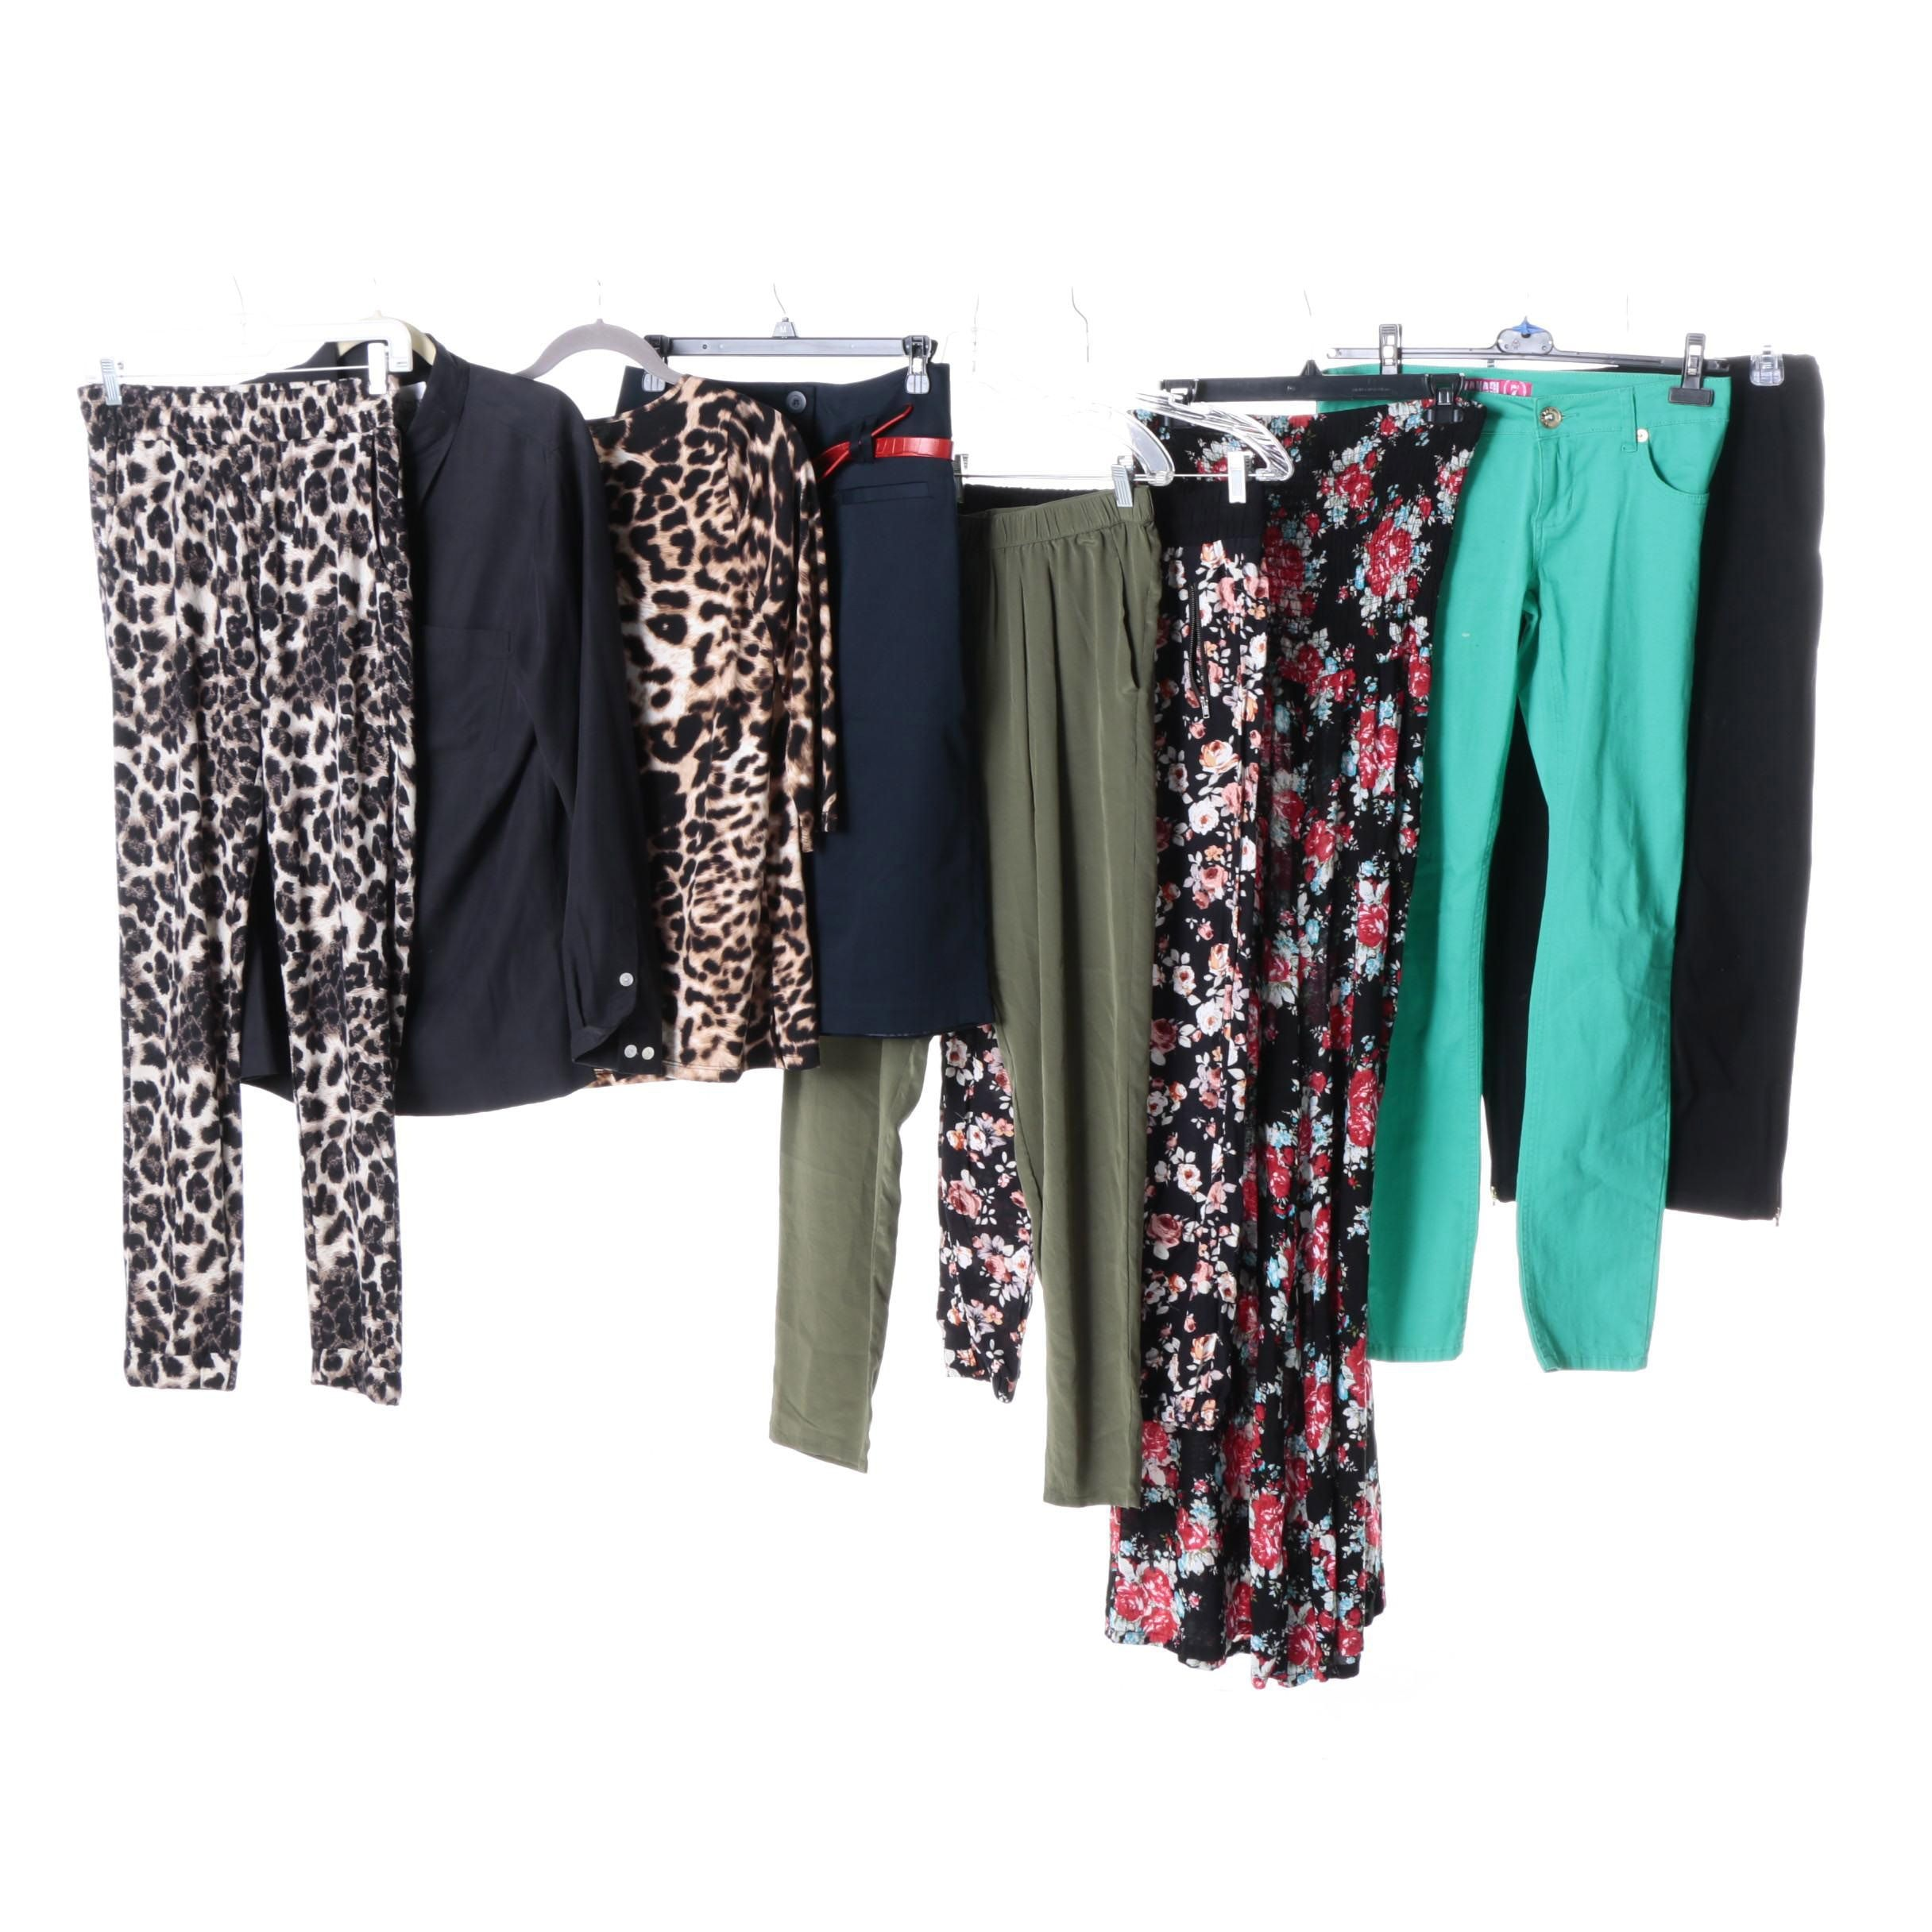 Women's Separates Including Lizden, Gypsy and Bongo